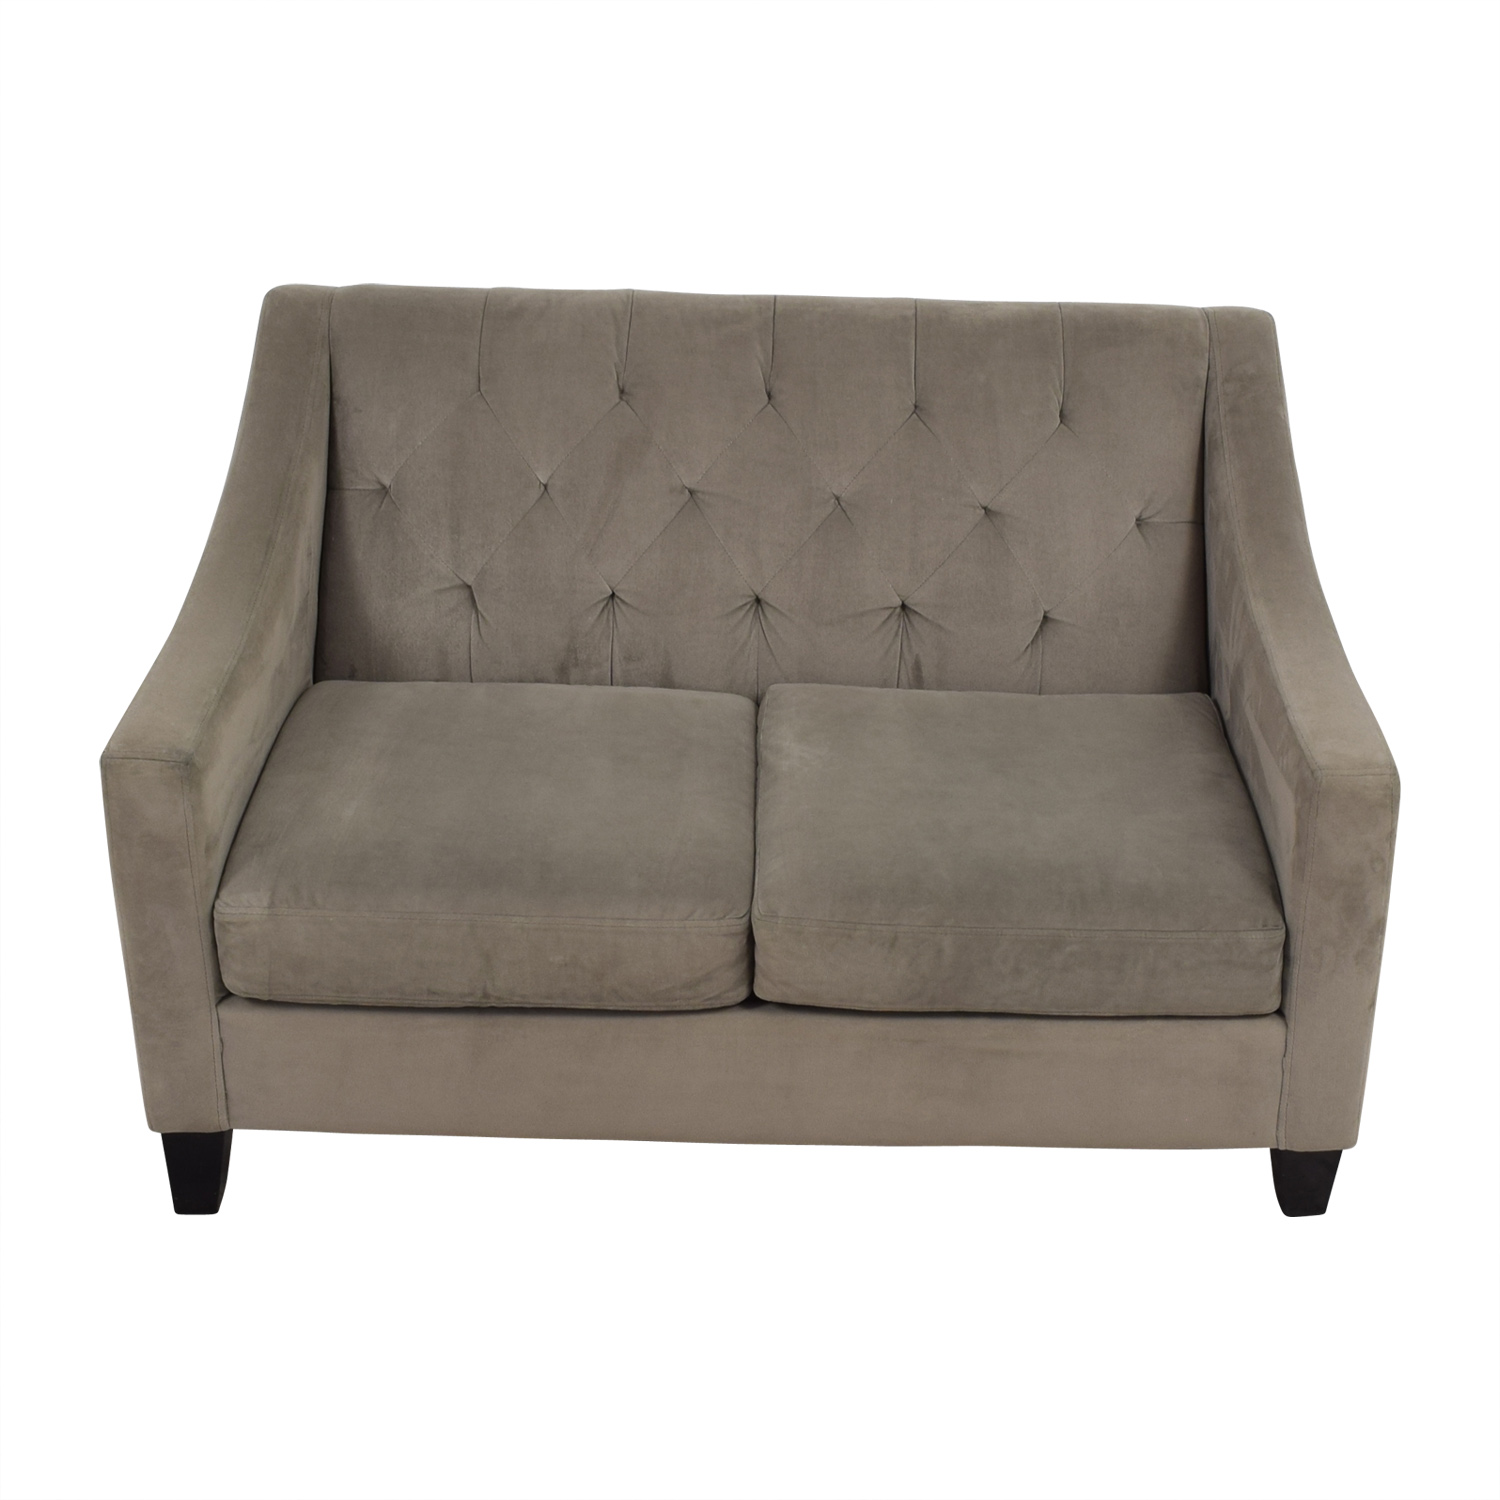 Better by Design Better by Design Grey Tufted Two-Cushion Sofa used